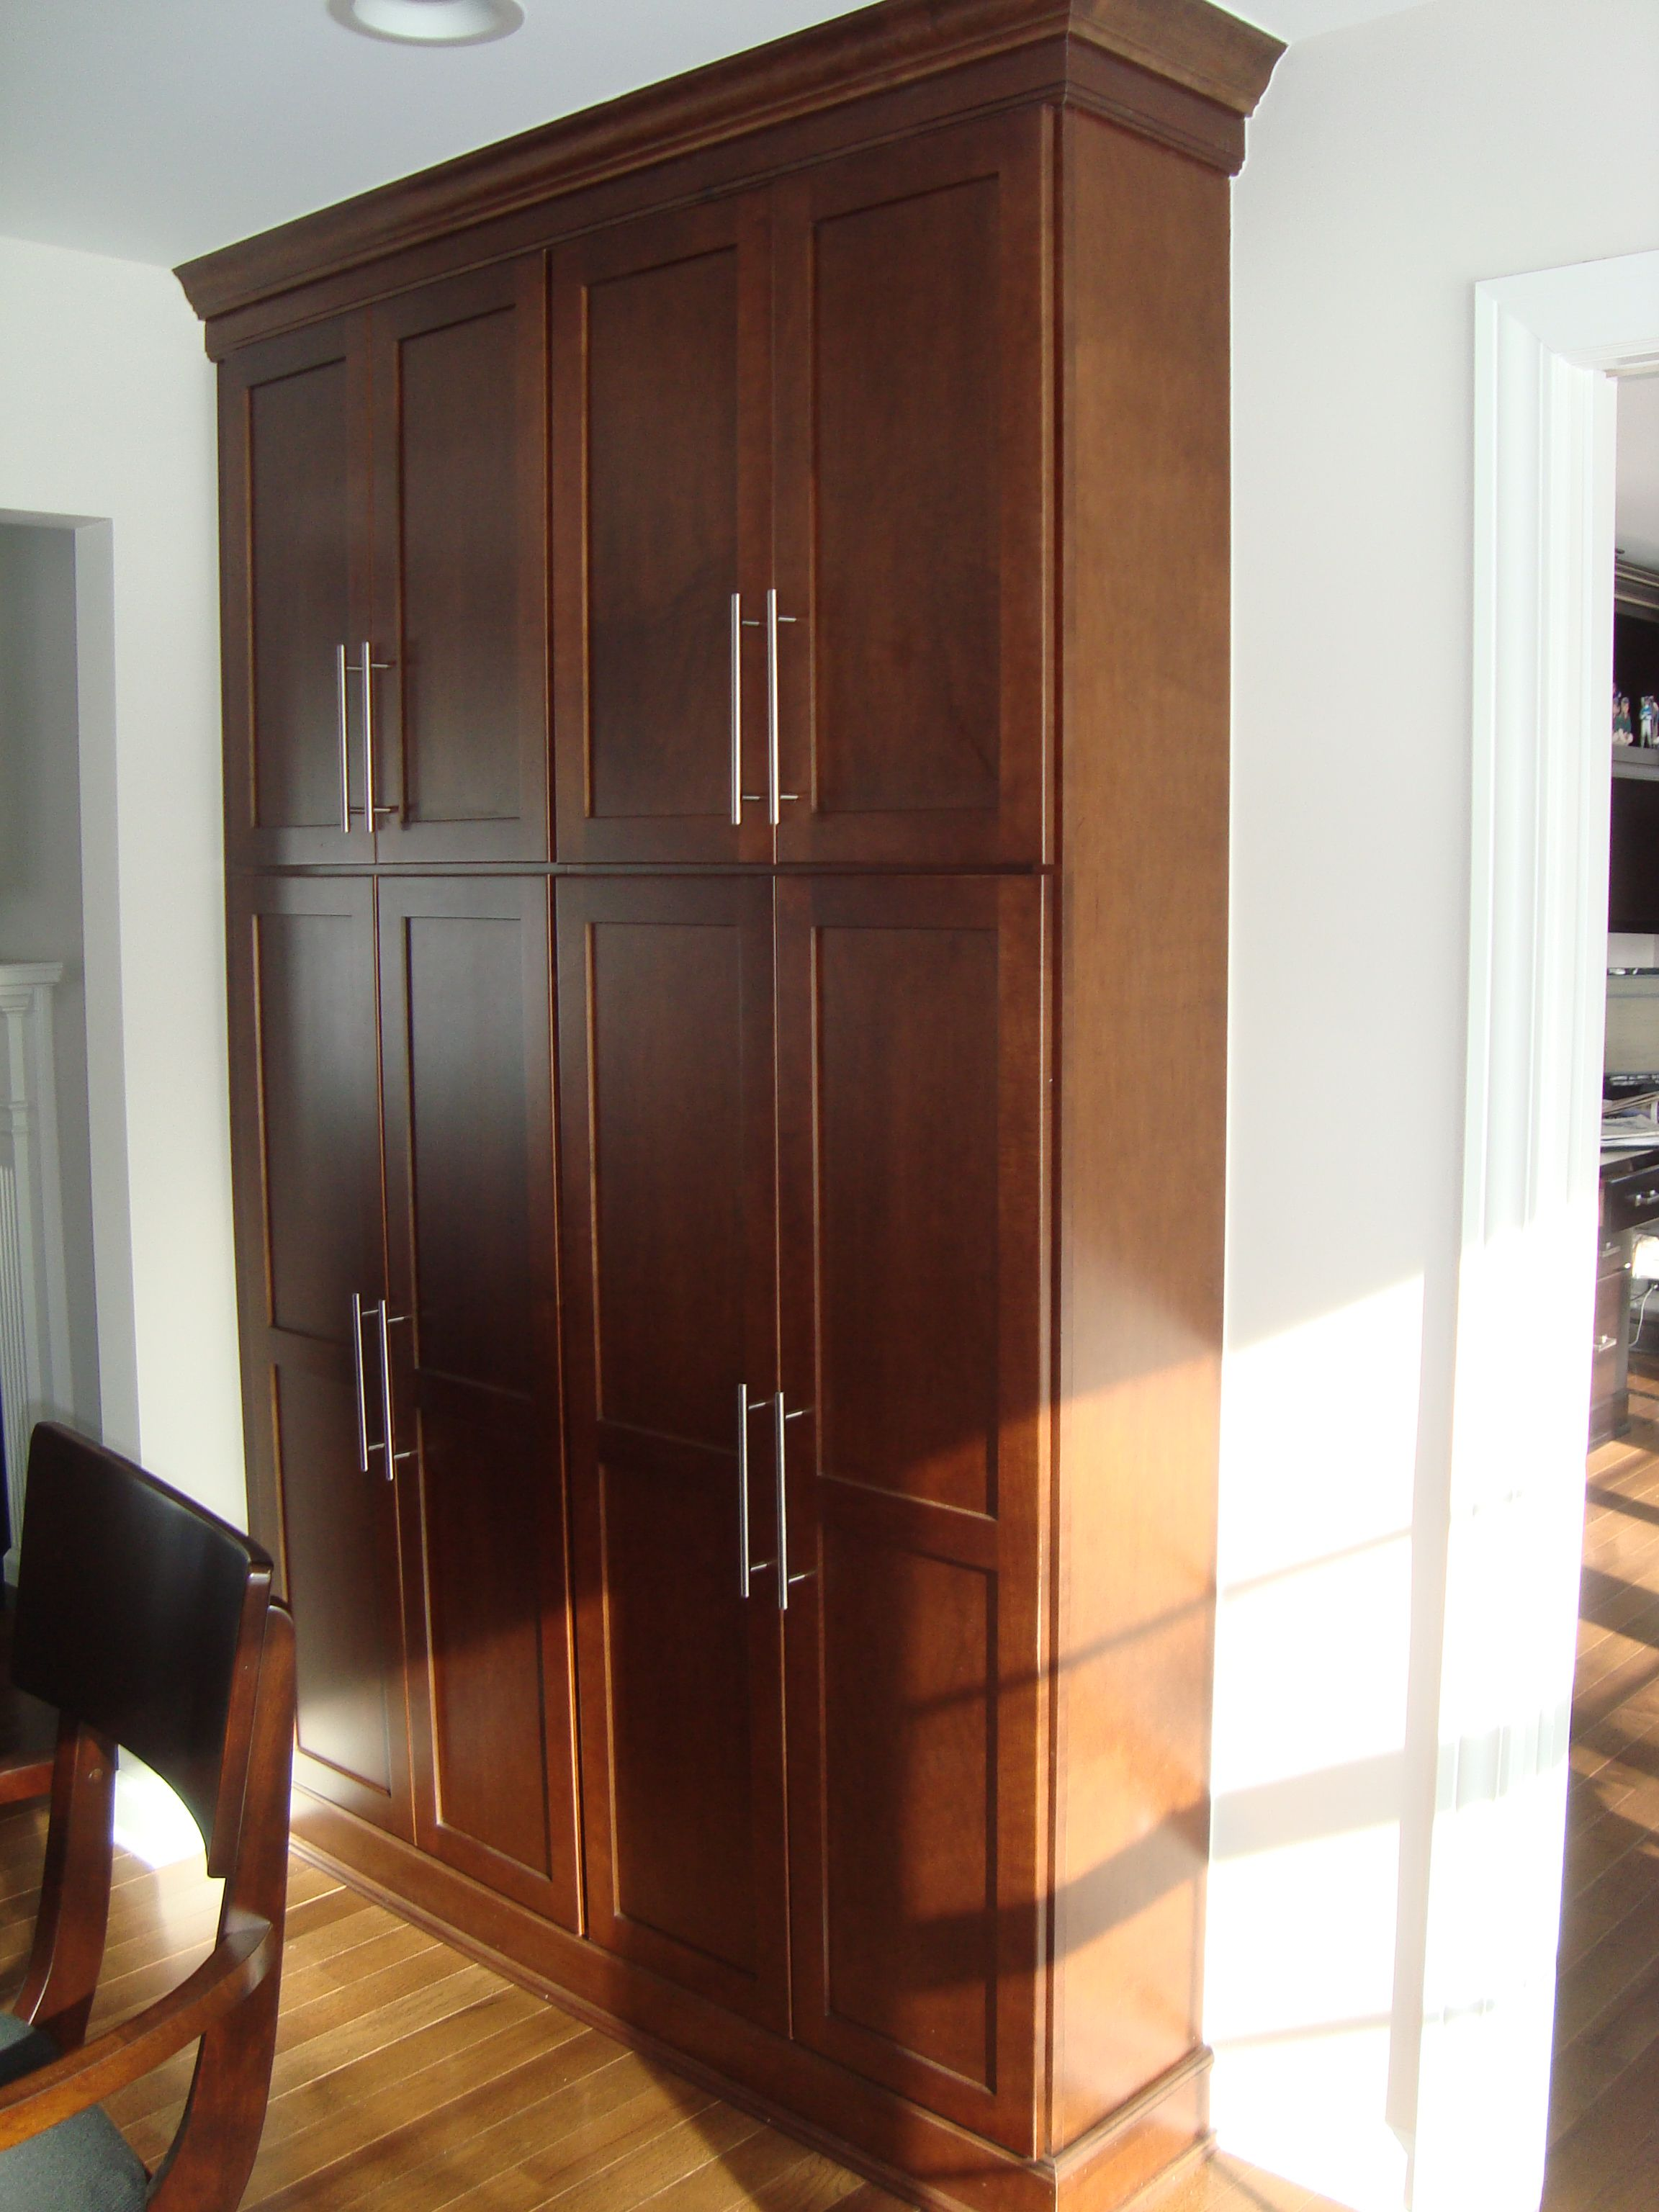 Tall shallow depth pantries kitchen inspiration pinterest for Kitchen closet cabinets